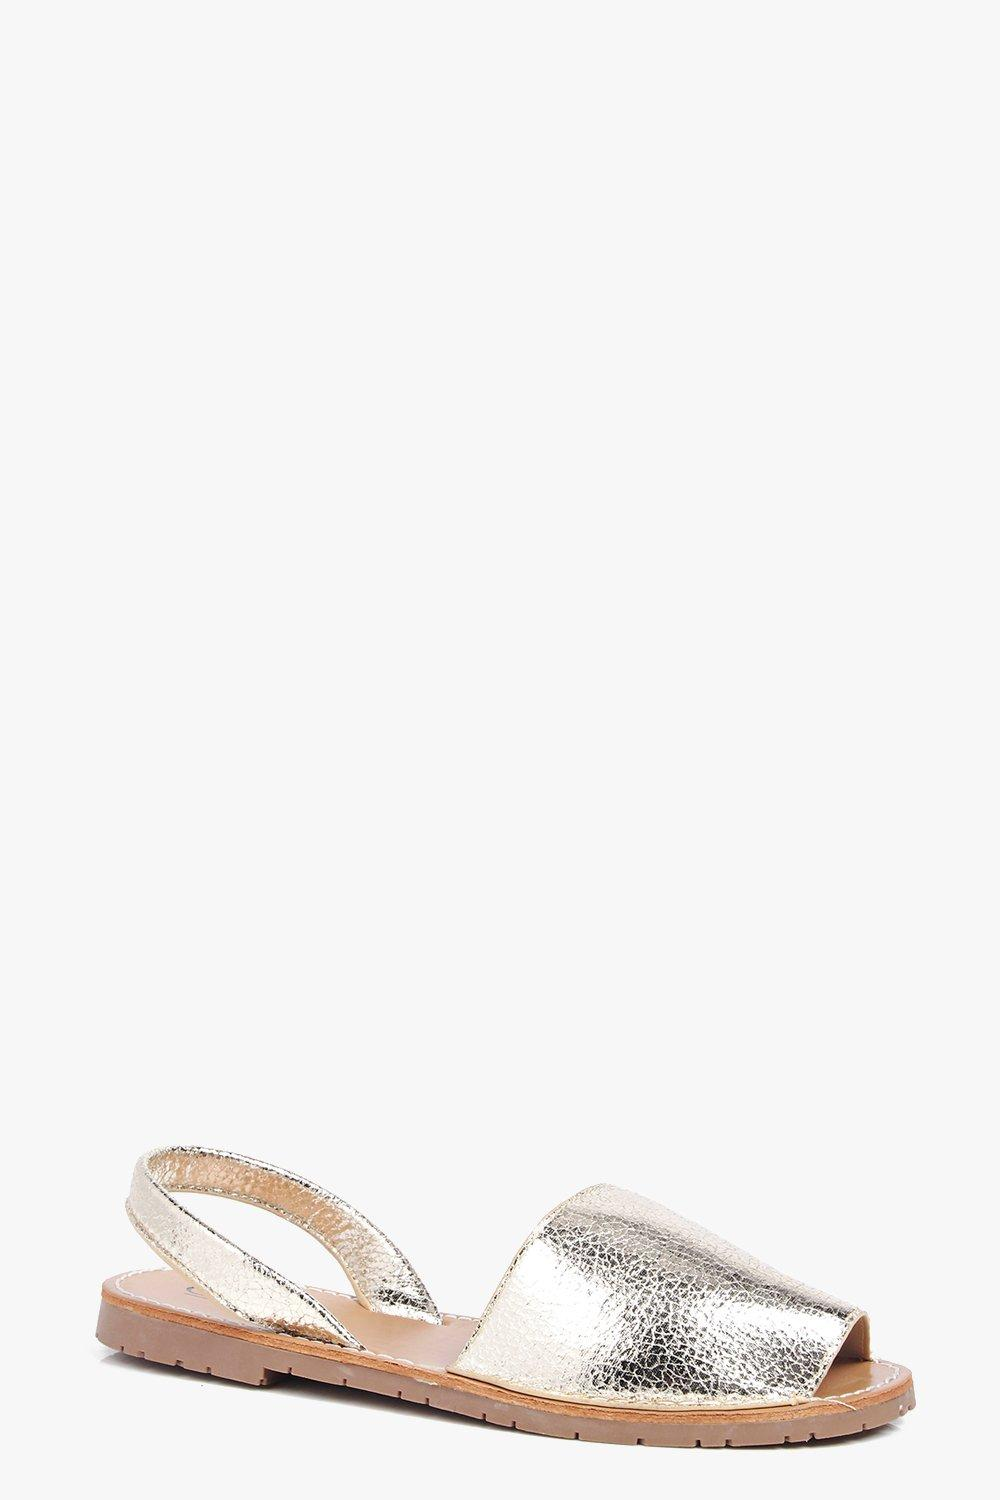 Ivy Crackle Metallic Sling Back Mule Sandal